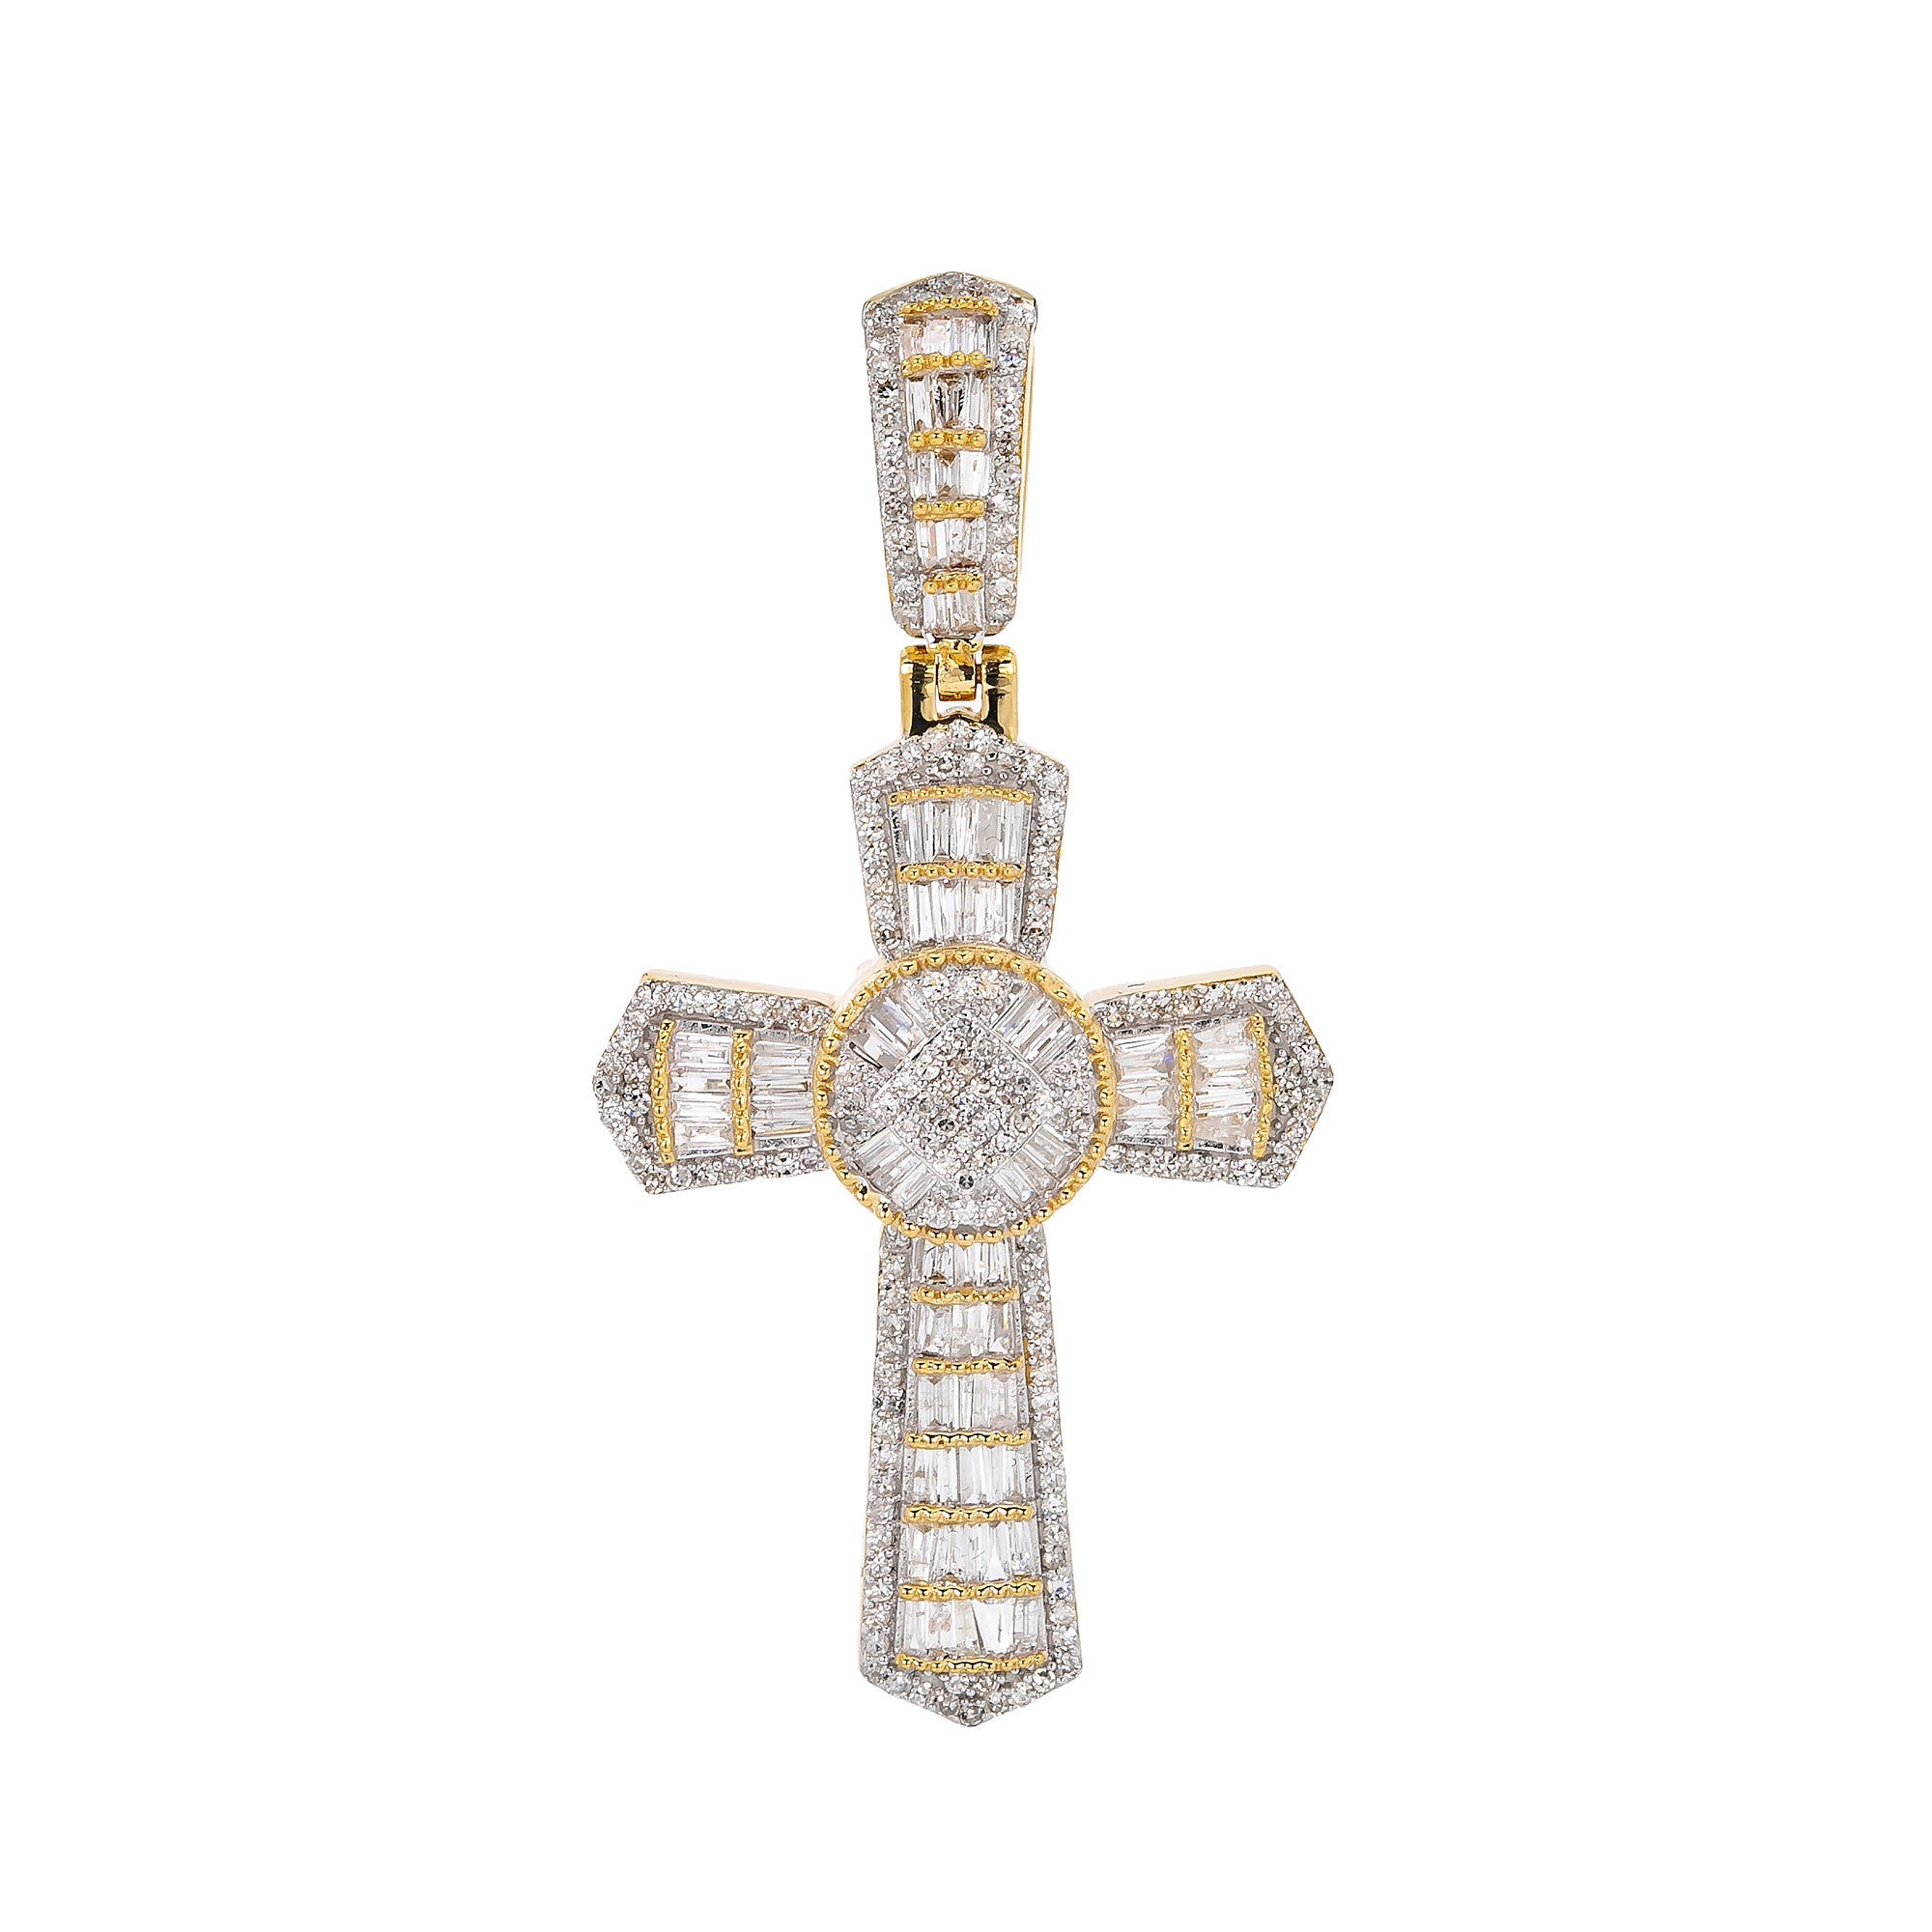 Unisex 14K Yellow Gold Cross Pendant with 1.25 CT Diamonds